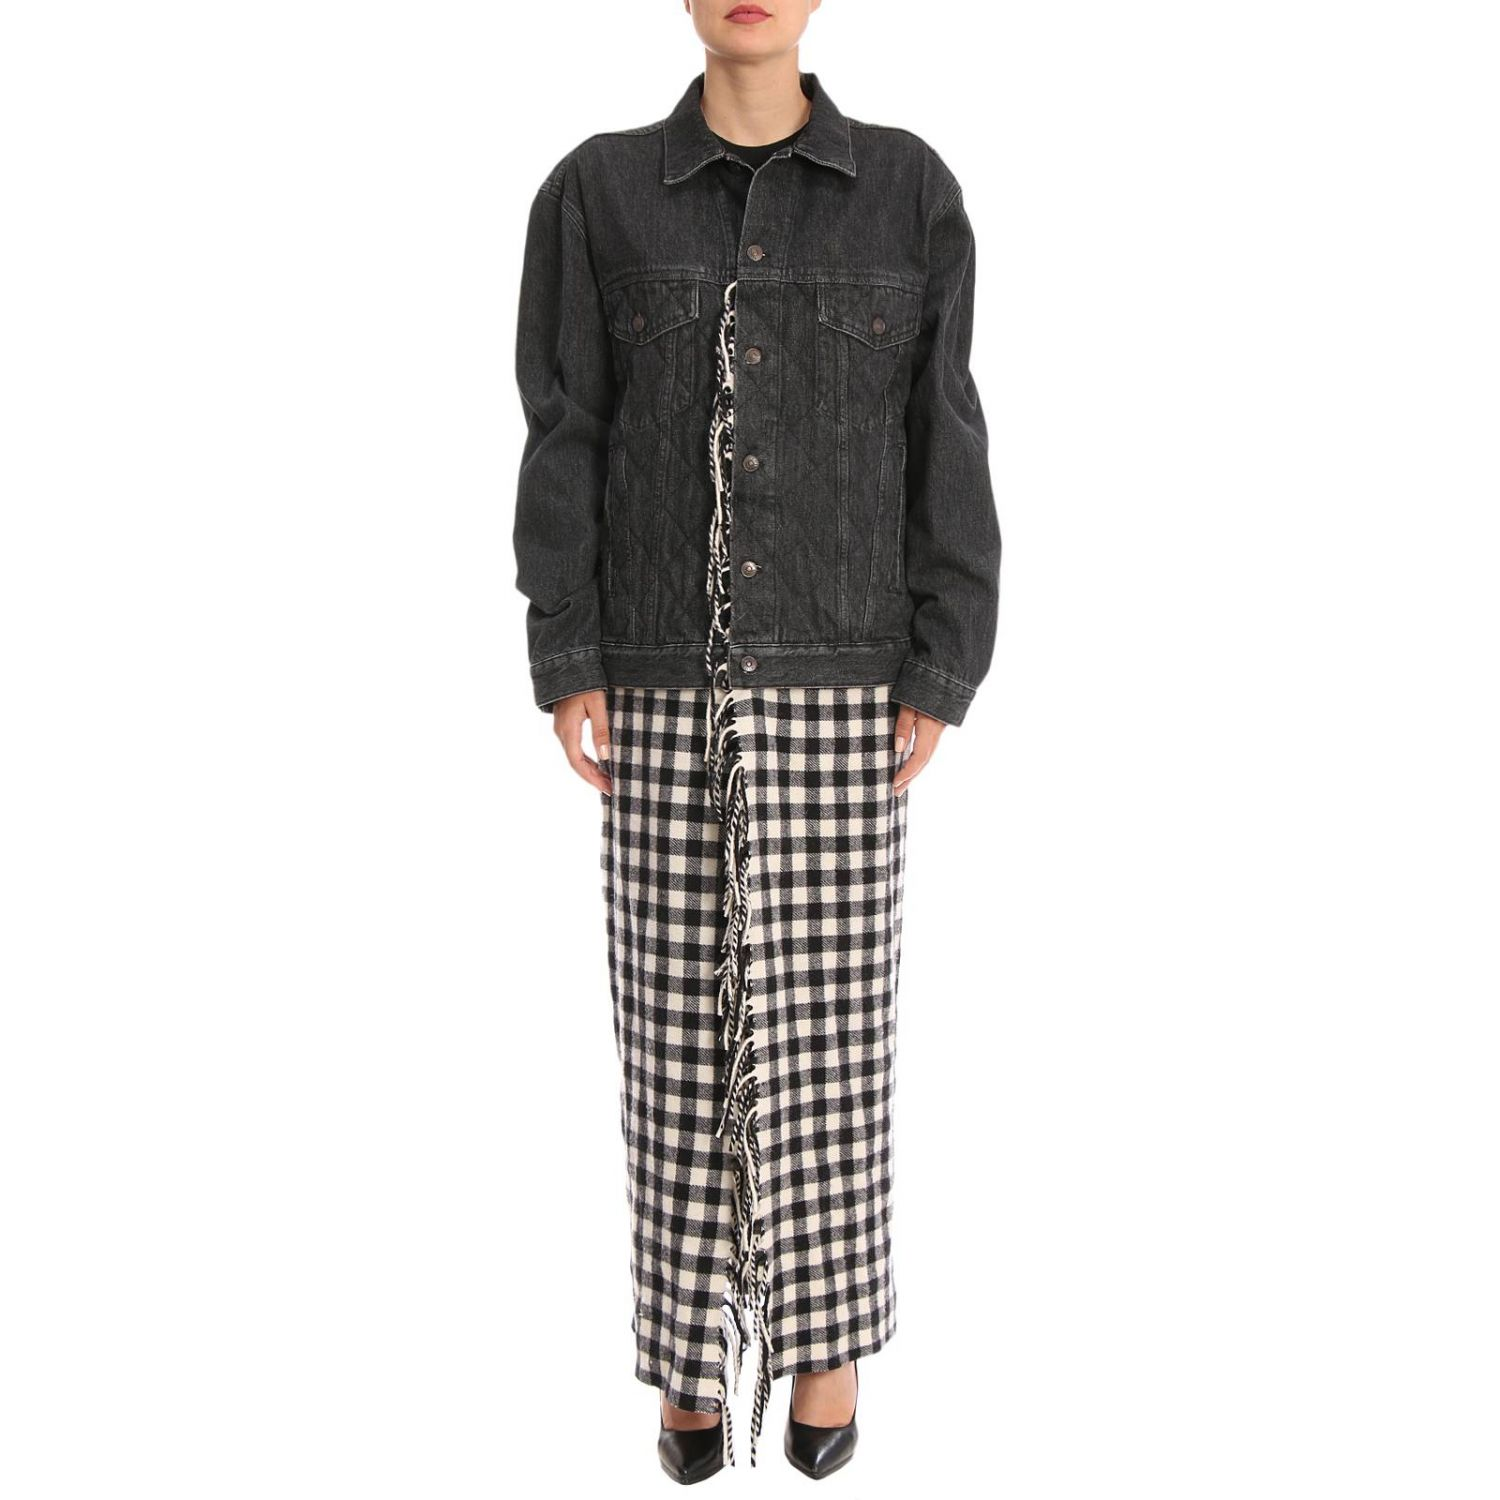 Giubbotto in denim over con maxi plaid check in stile coperta nero 1